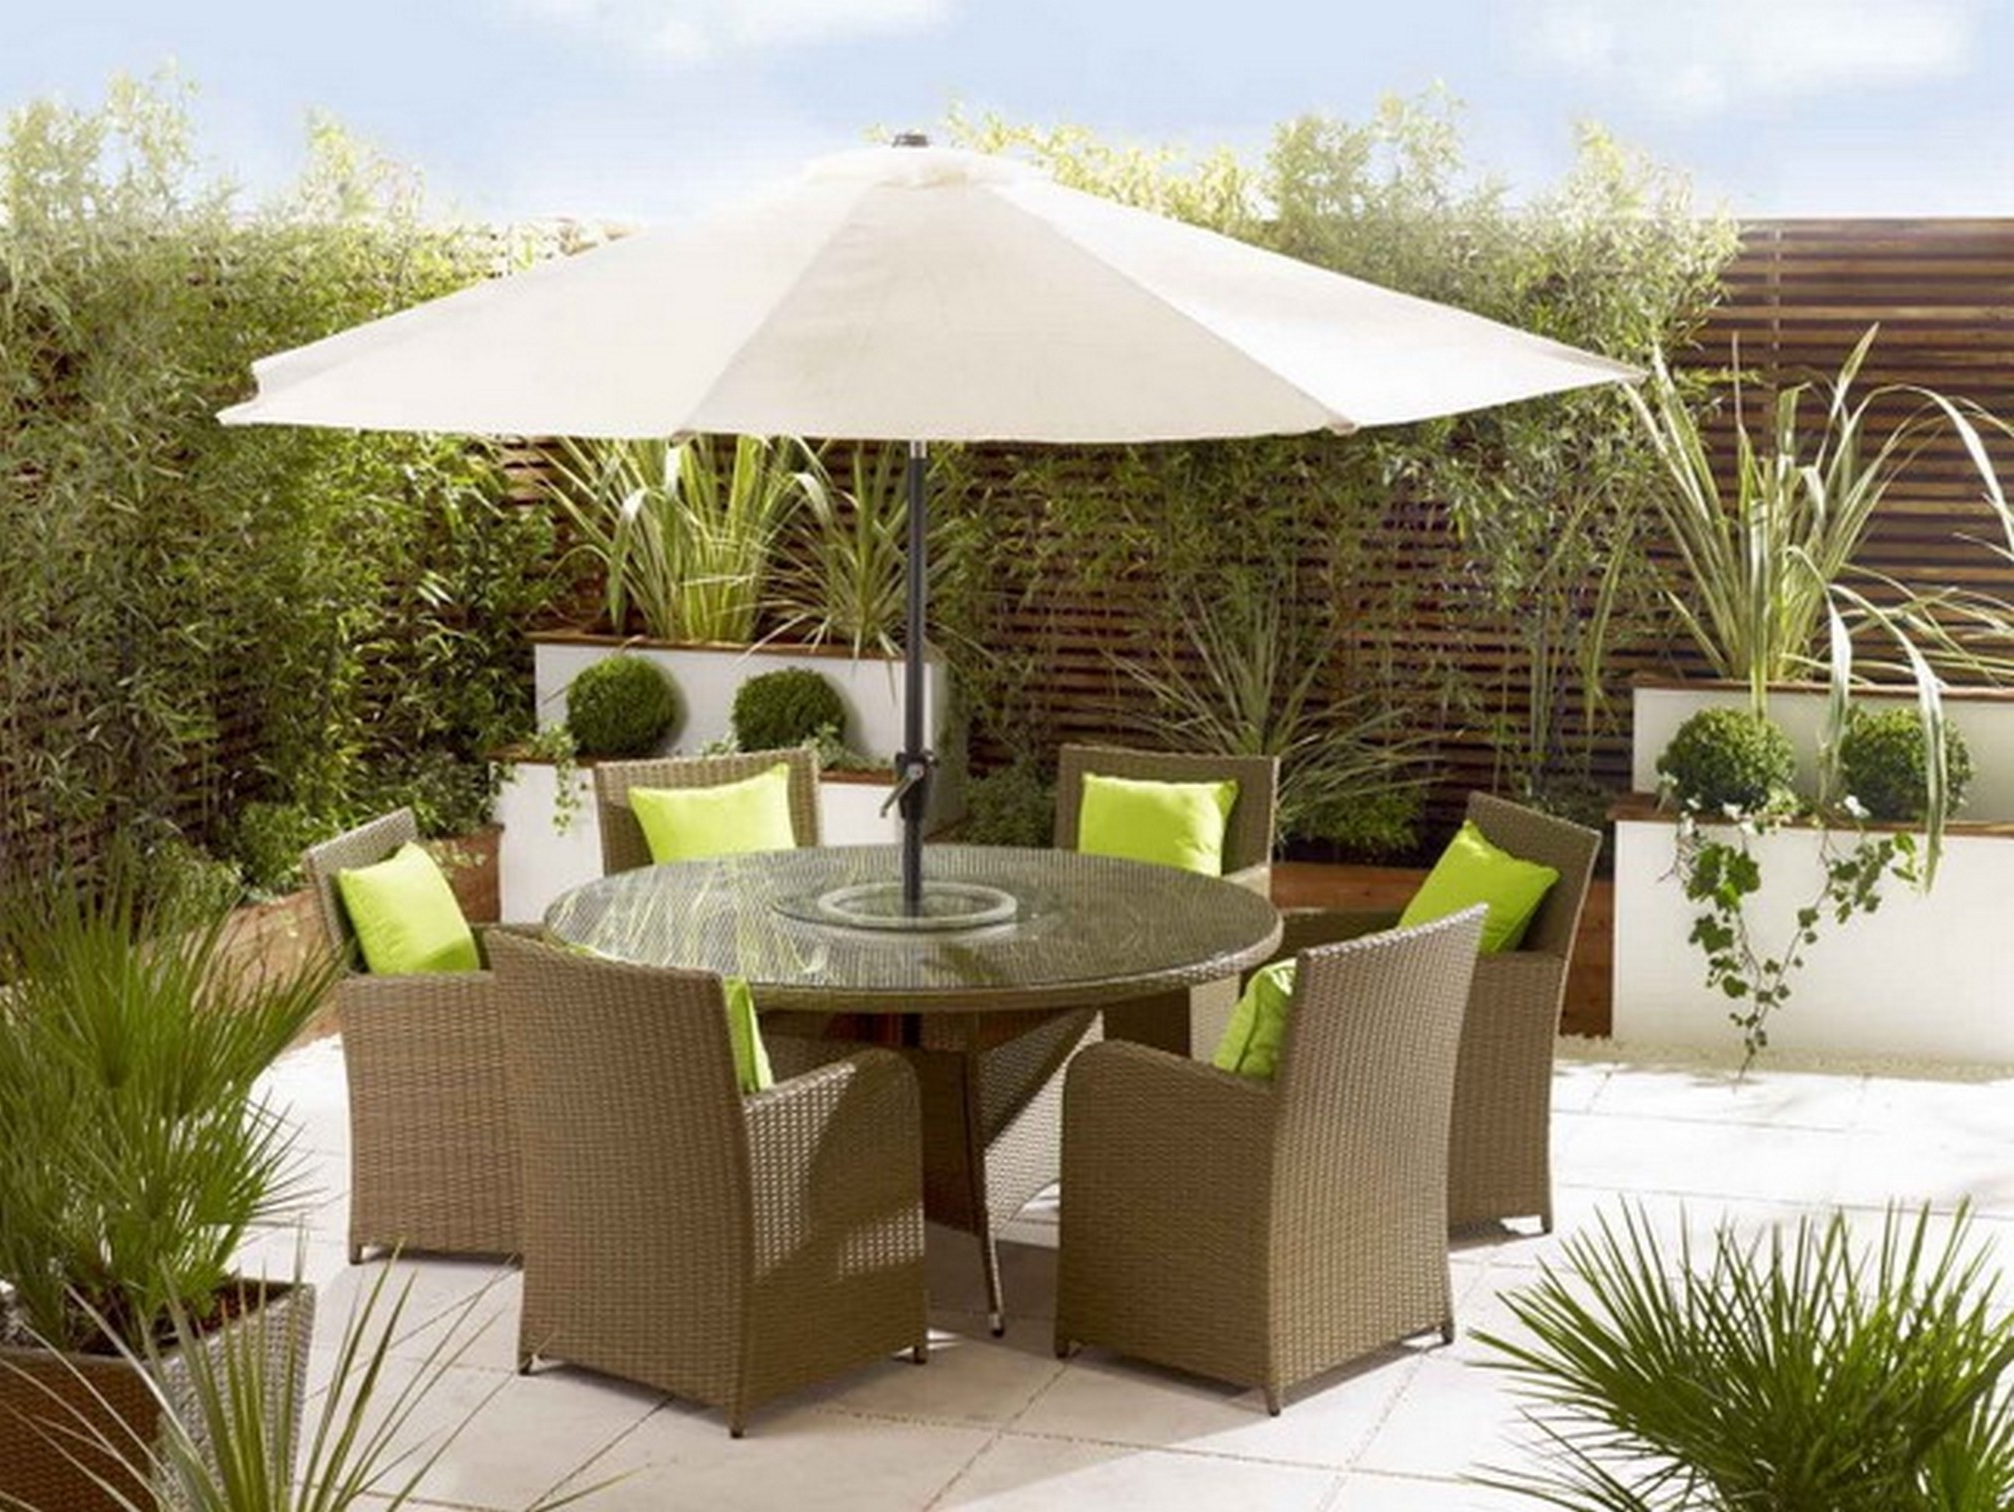 Patio Table Umbrella Cover — Mistikcamping Home Design : The Patio Within Popular Patio Umbrellas With Table (View 12 of 20)